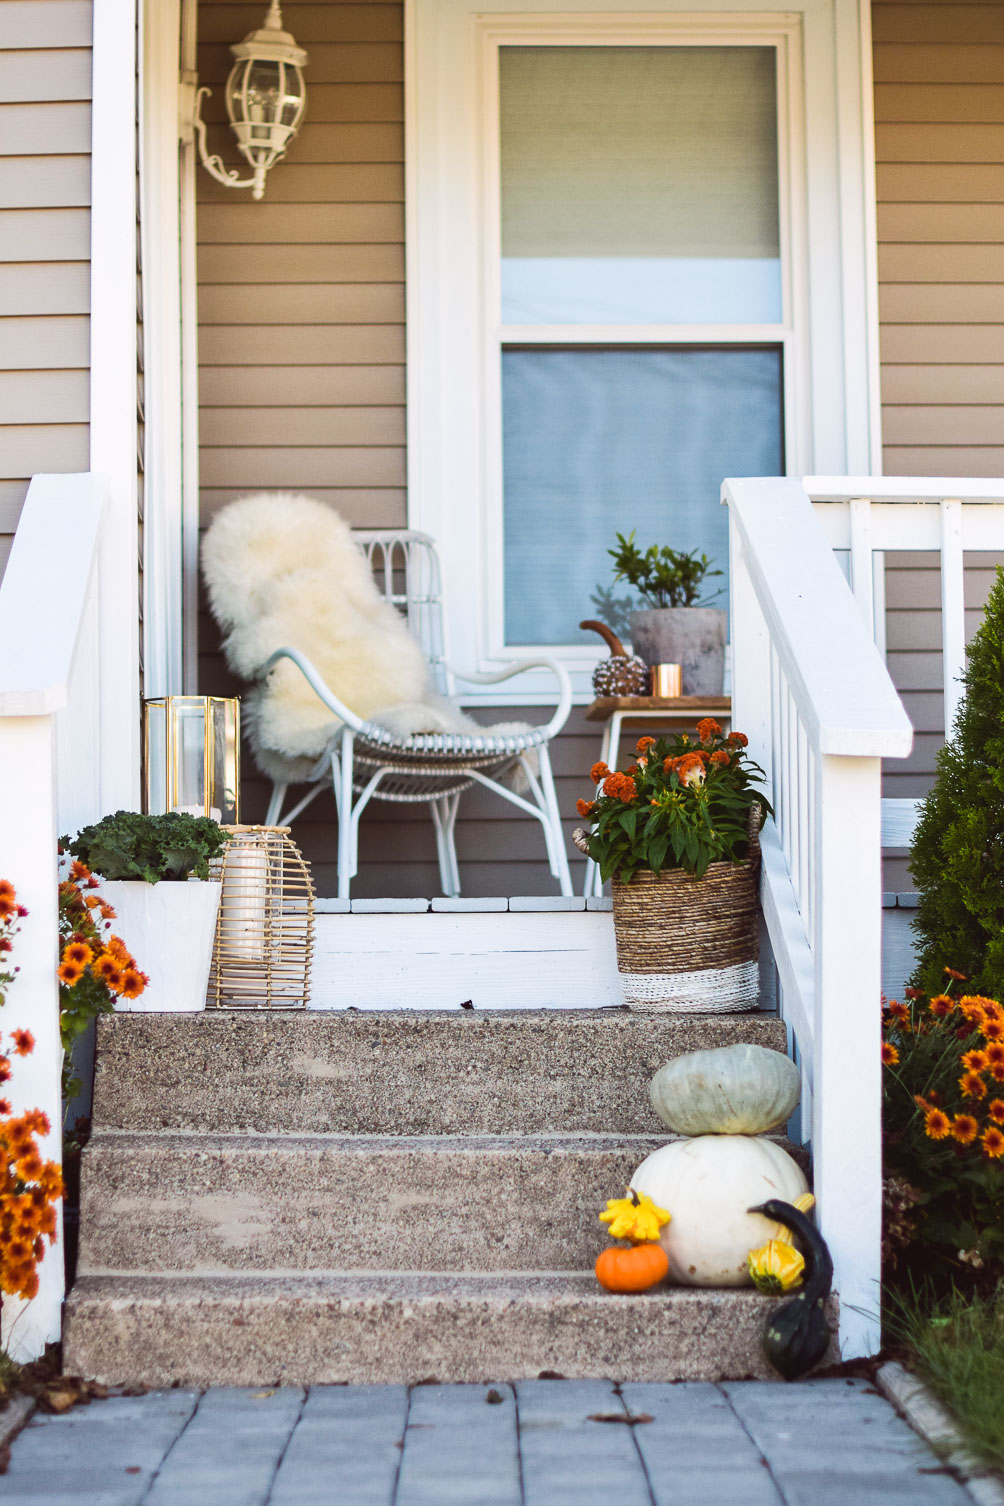 styling a porch with cute and festive outdoor fall decor on a budget